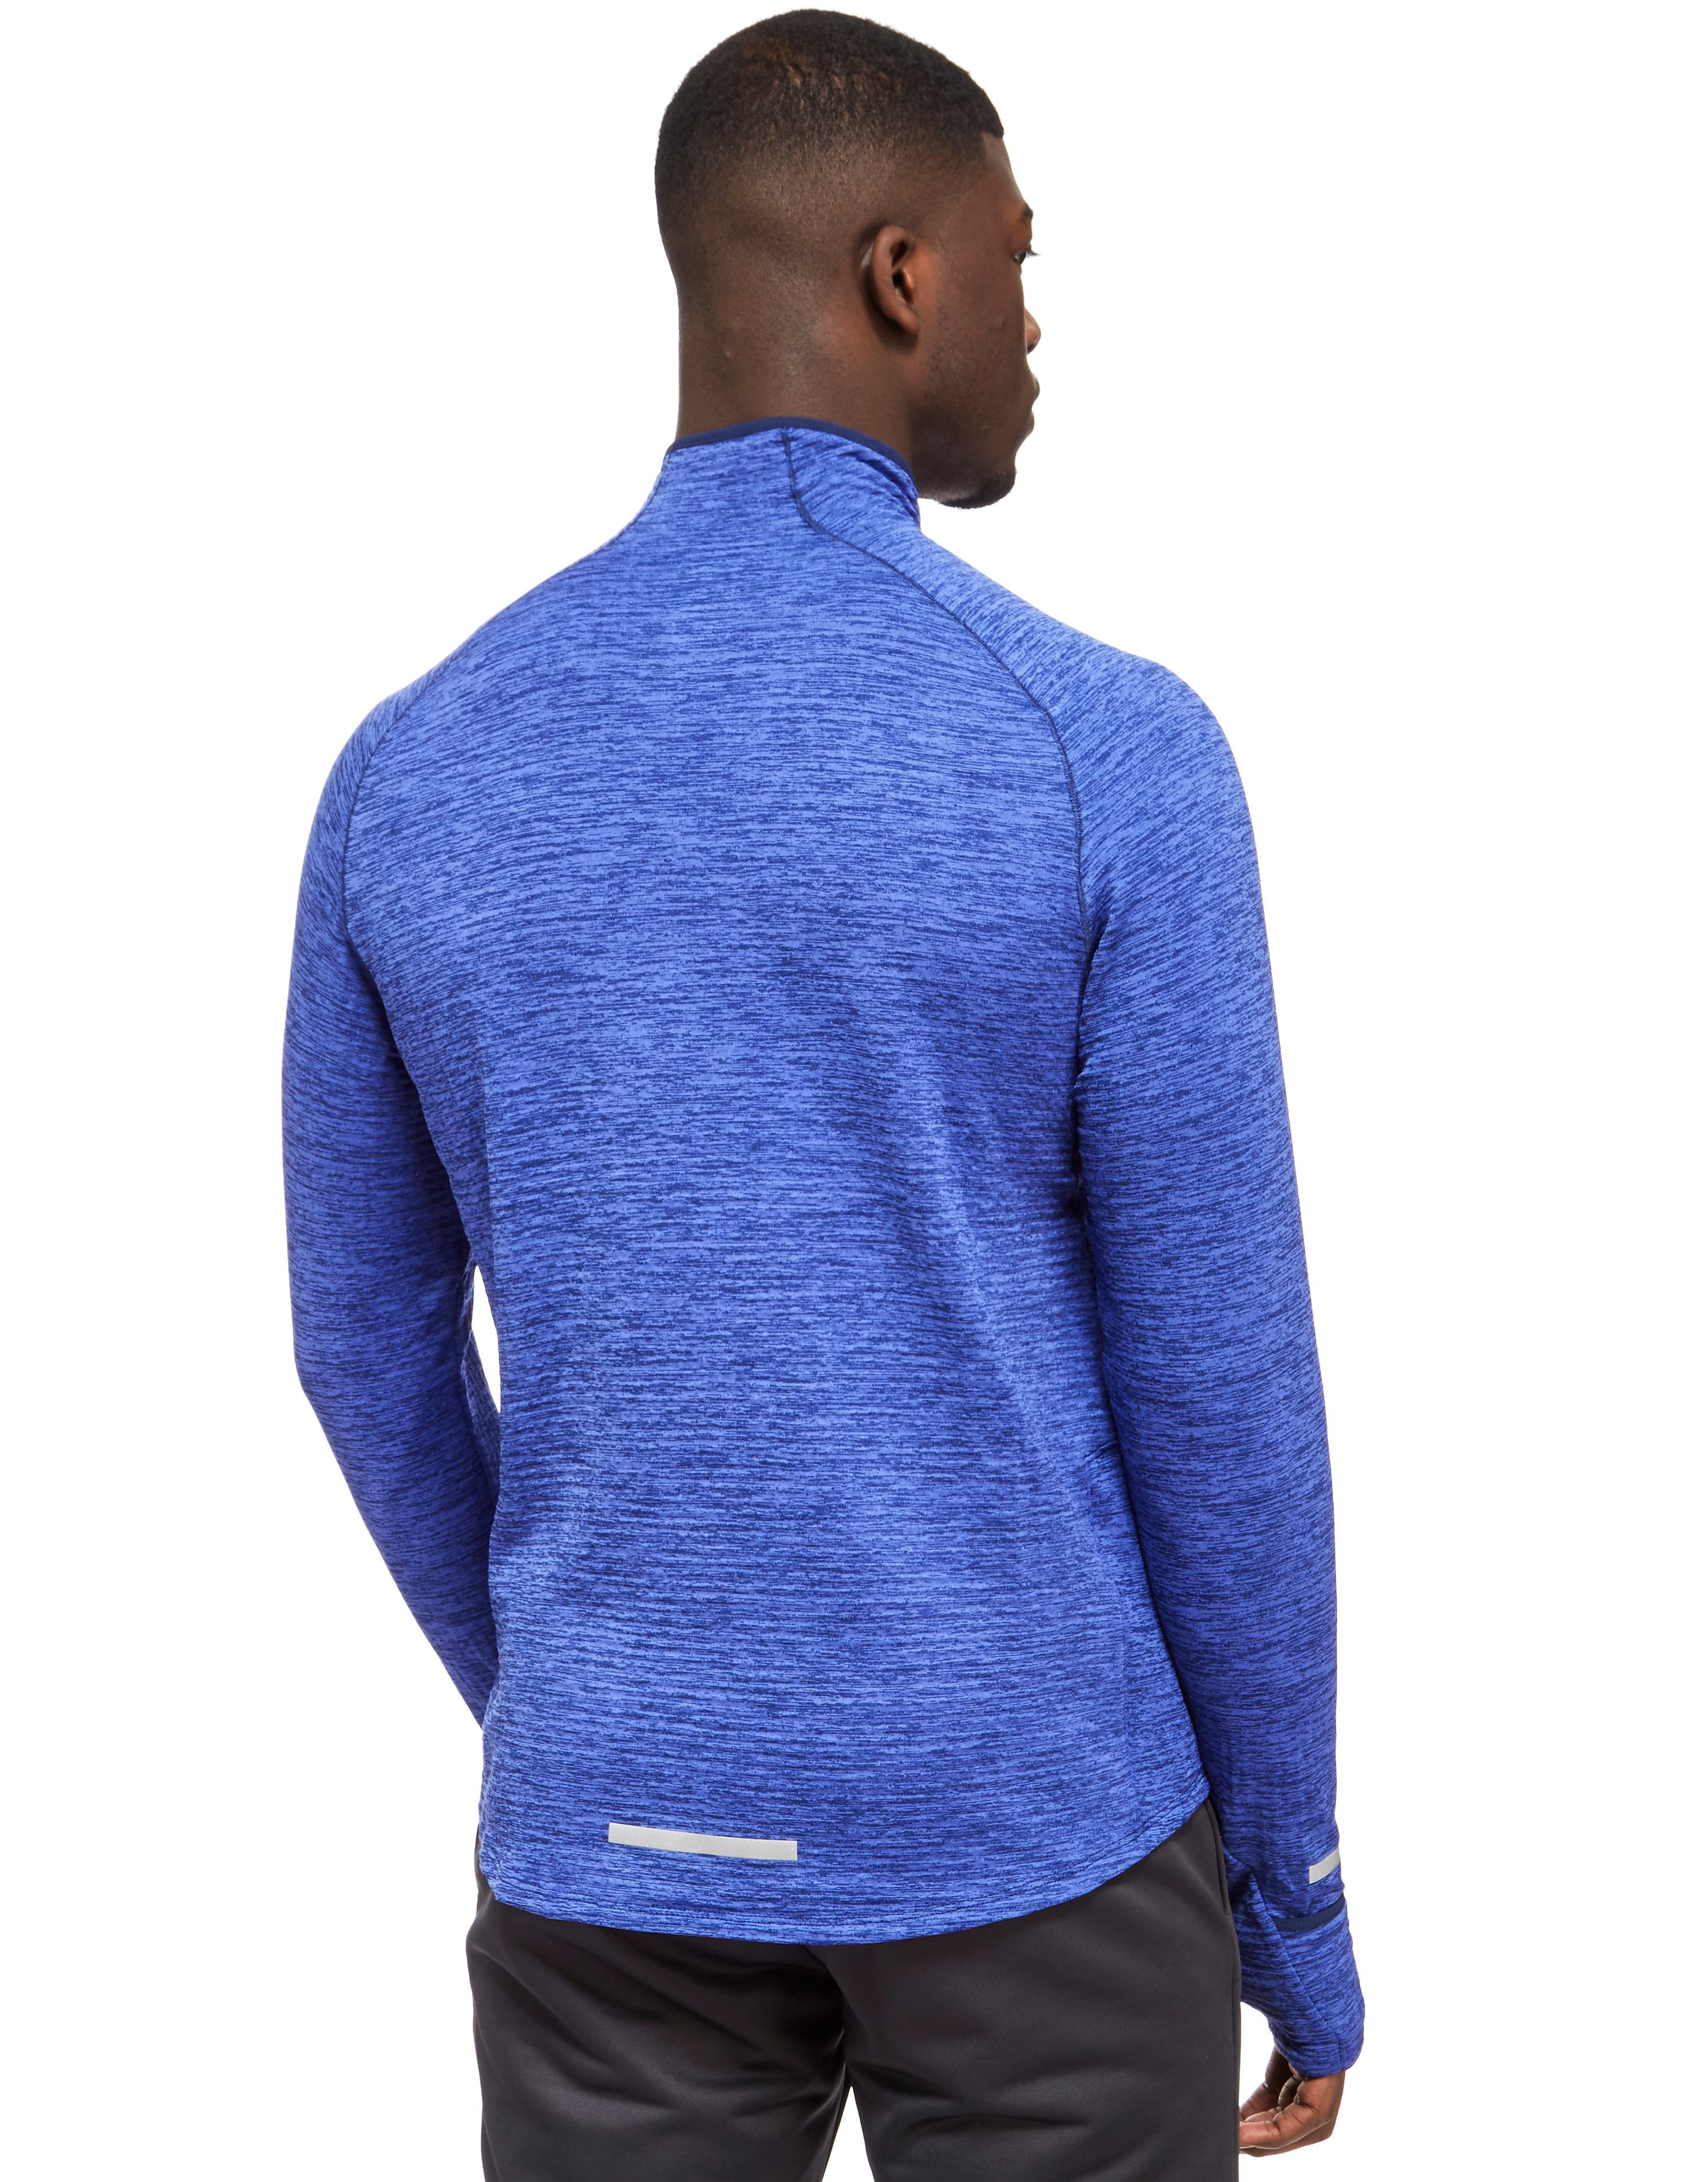 Nike Sphere Half Zip Long Sleeve Top